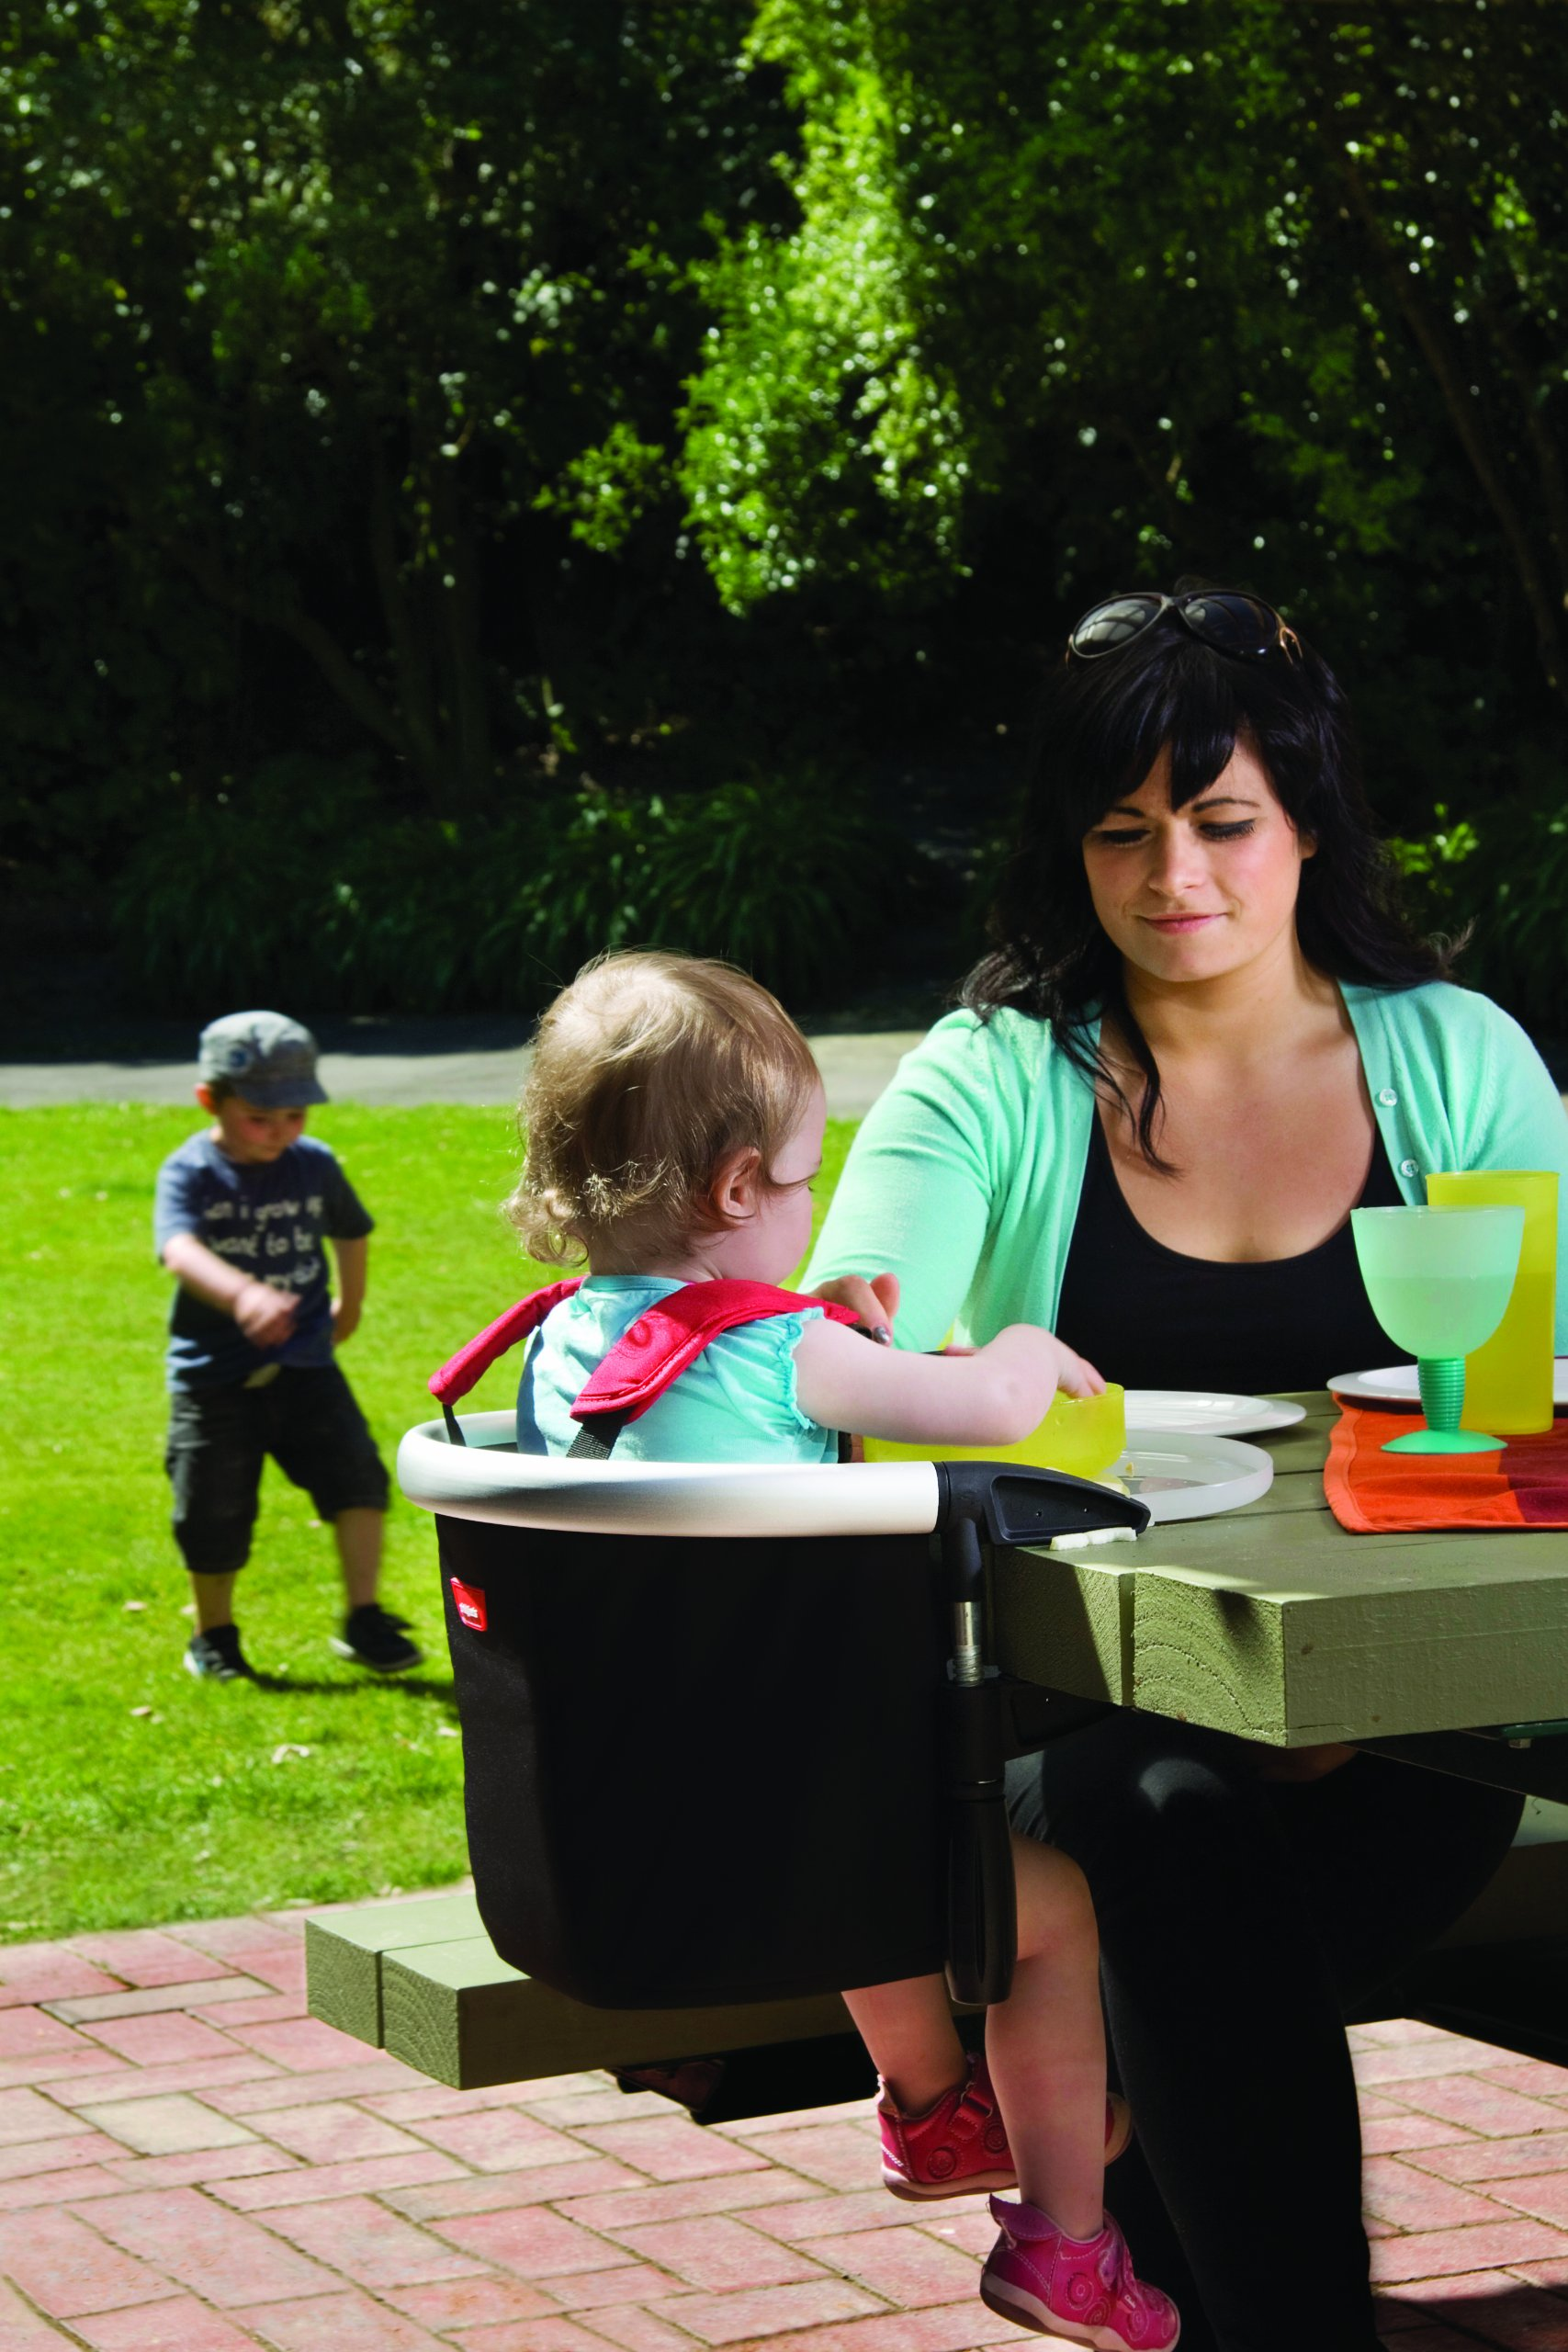 phil&teds Lobster Clip-On Highchair, Black - Award Winning Portable High Chair - Includes Carry Bag and Dishwasher Safe Tray - Hygienic and Easy Clean - Safe and Secure - Ideal For Home and Travel by phil&teds (Image #10)